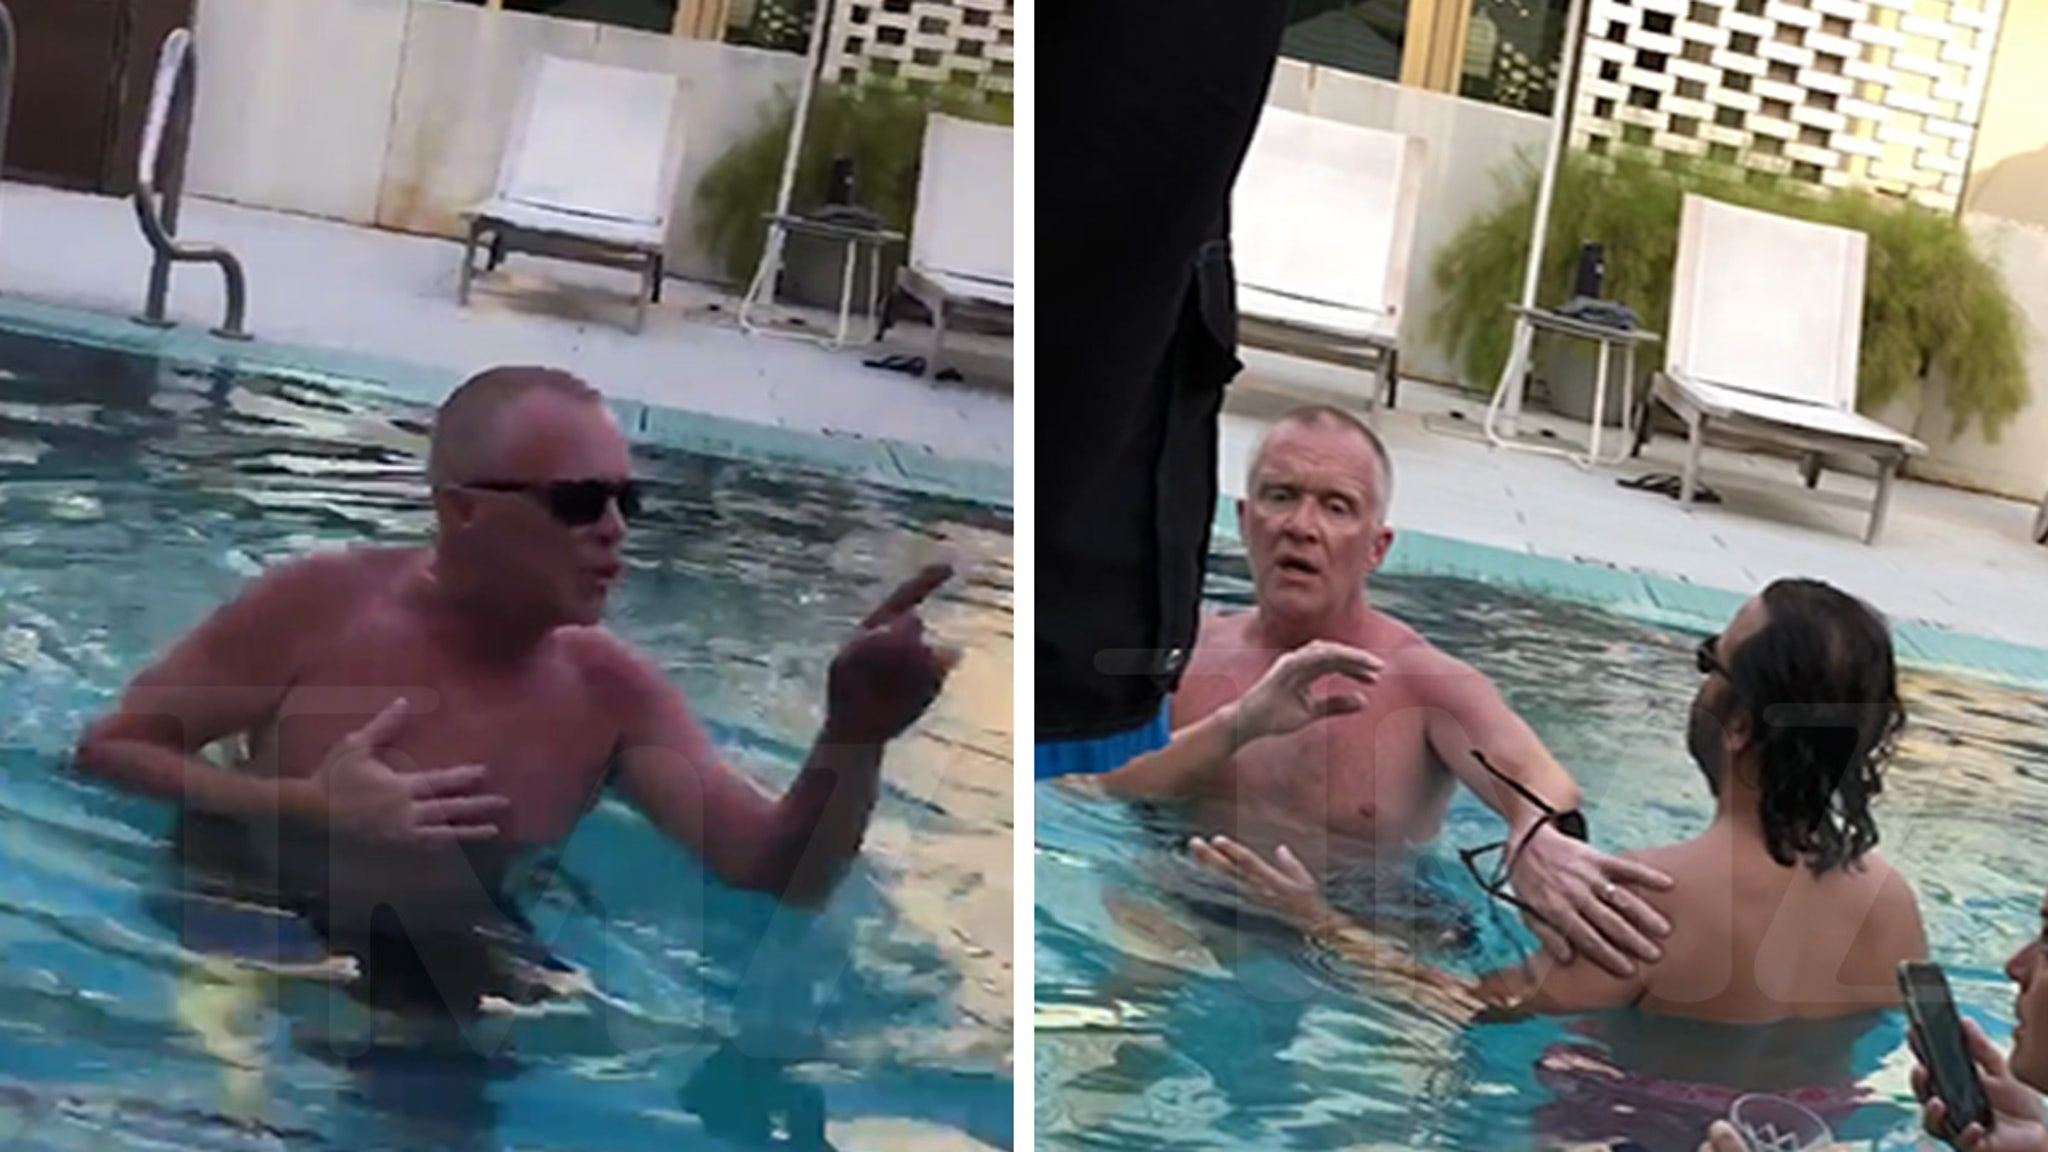 Anthony Michael Hall Apologizes for Berating Hotel Guests in Pool - TMZ